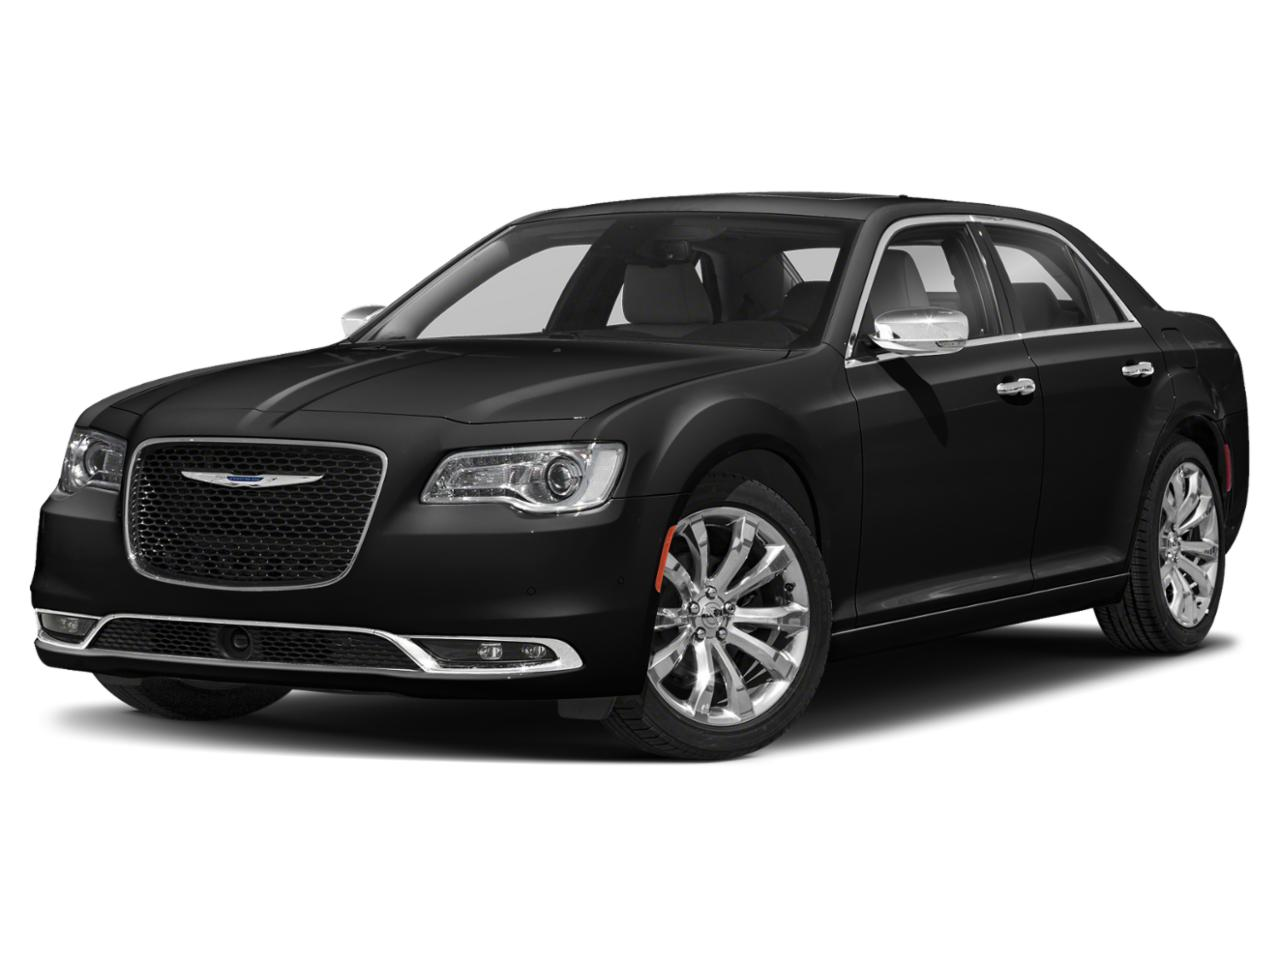 2018 Chrysler 300 Vehicle Photo in Colma, CA 94014